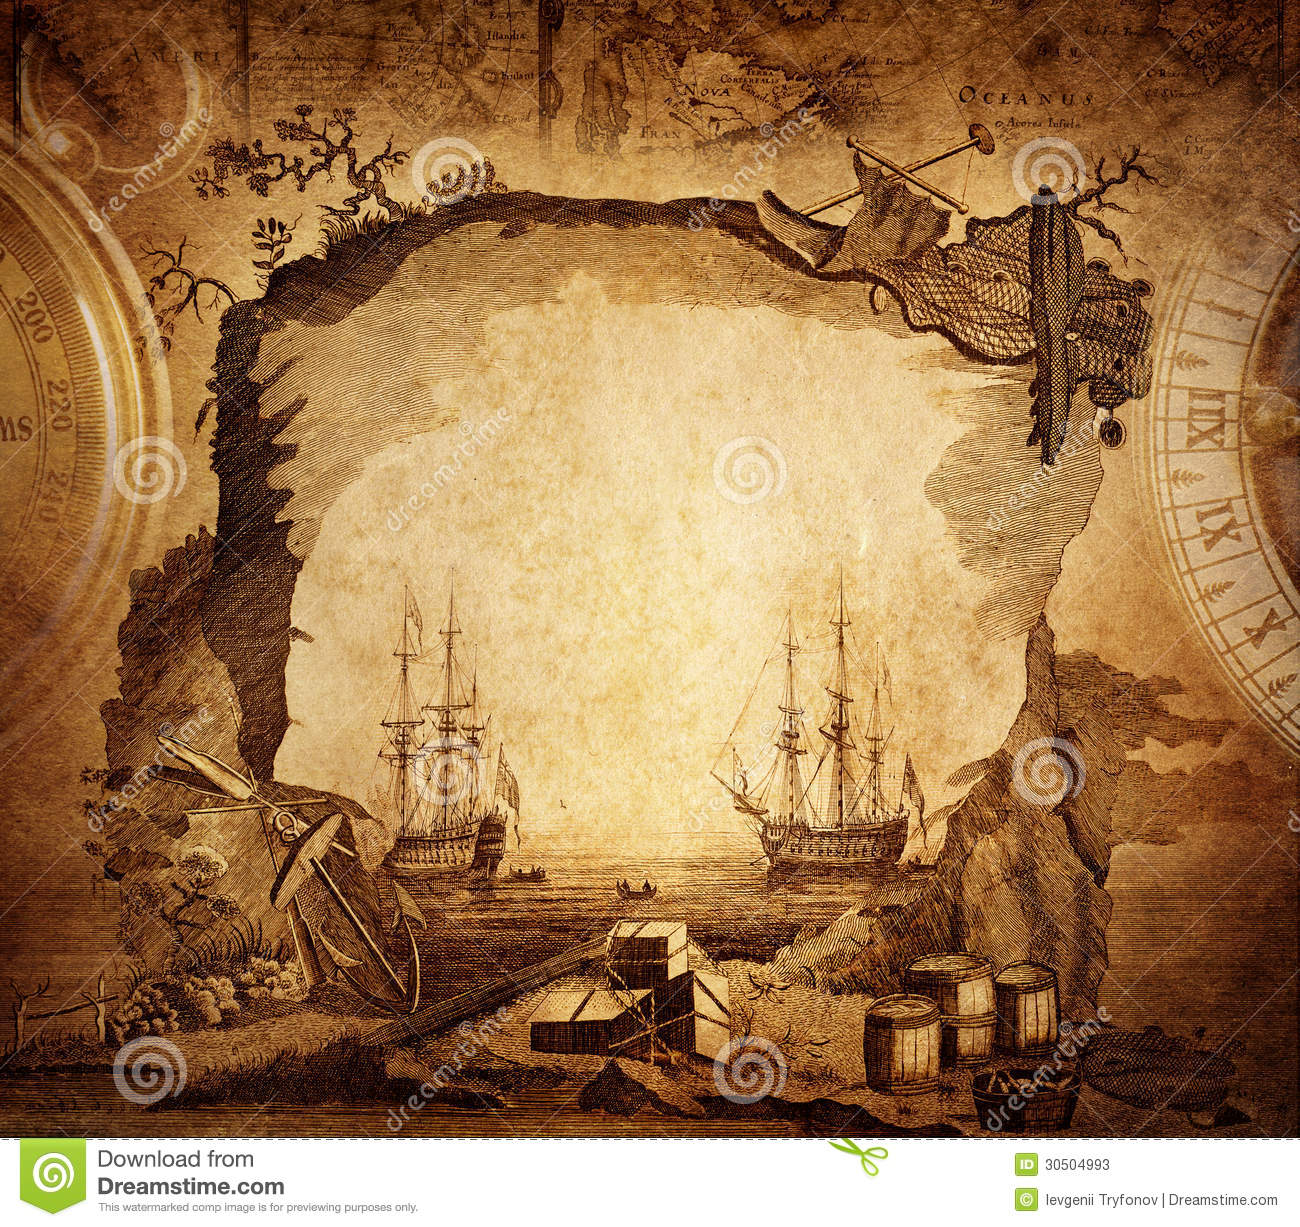 Adventure Background Royalty Free Stock Photo - Image: 6984605